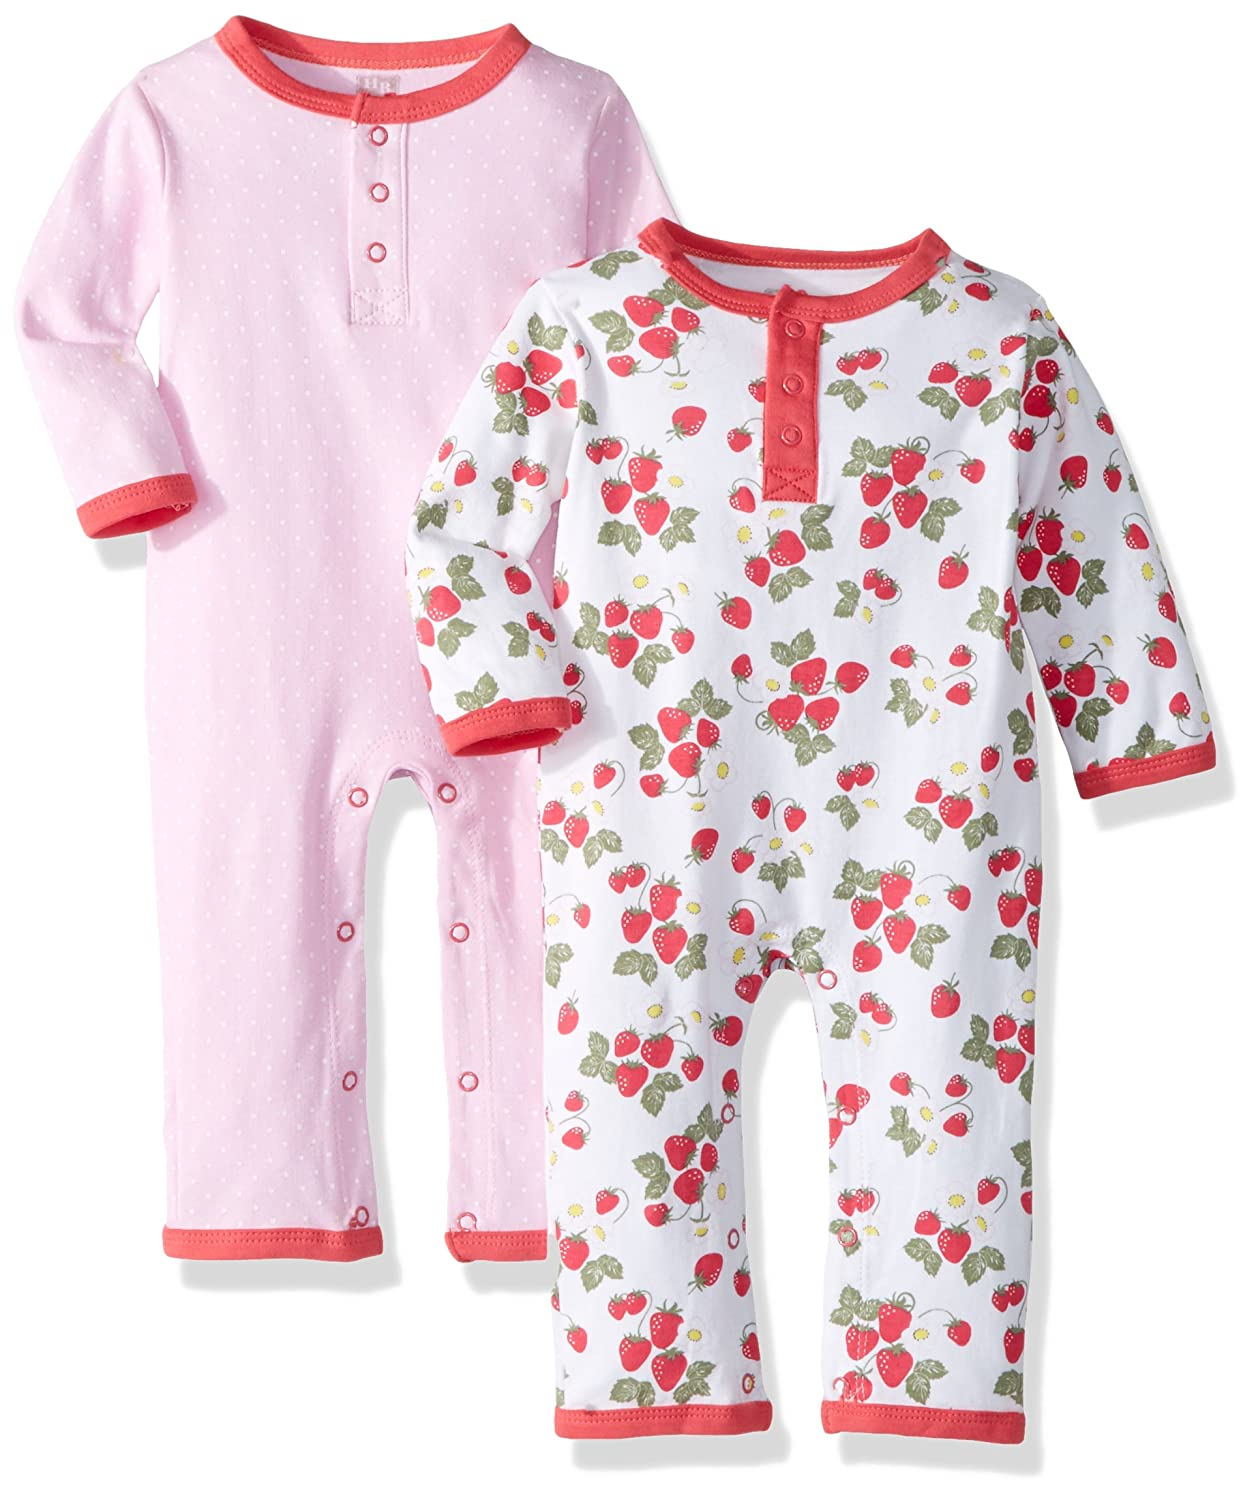 Hudson Baby Unisex-Baby Baby Cotton Union Suit, 2 Pack 101509